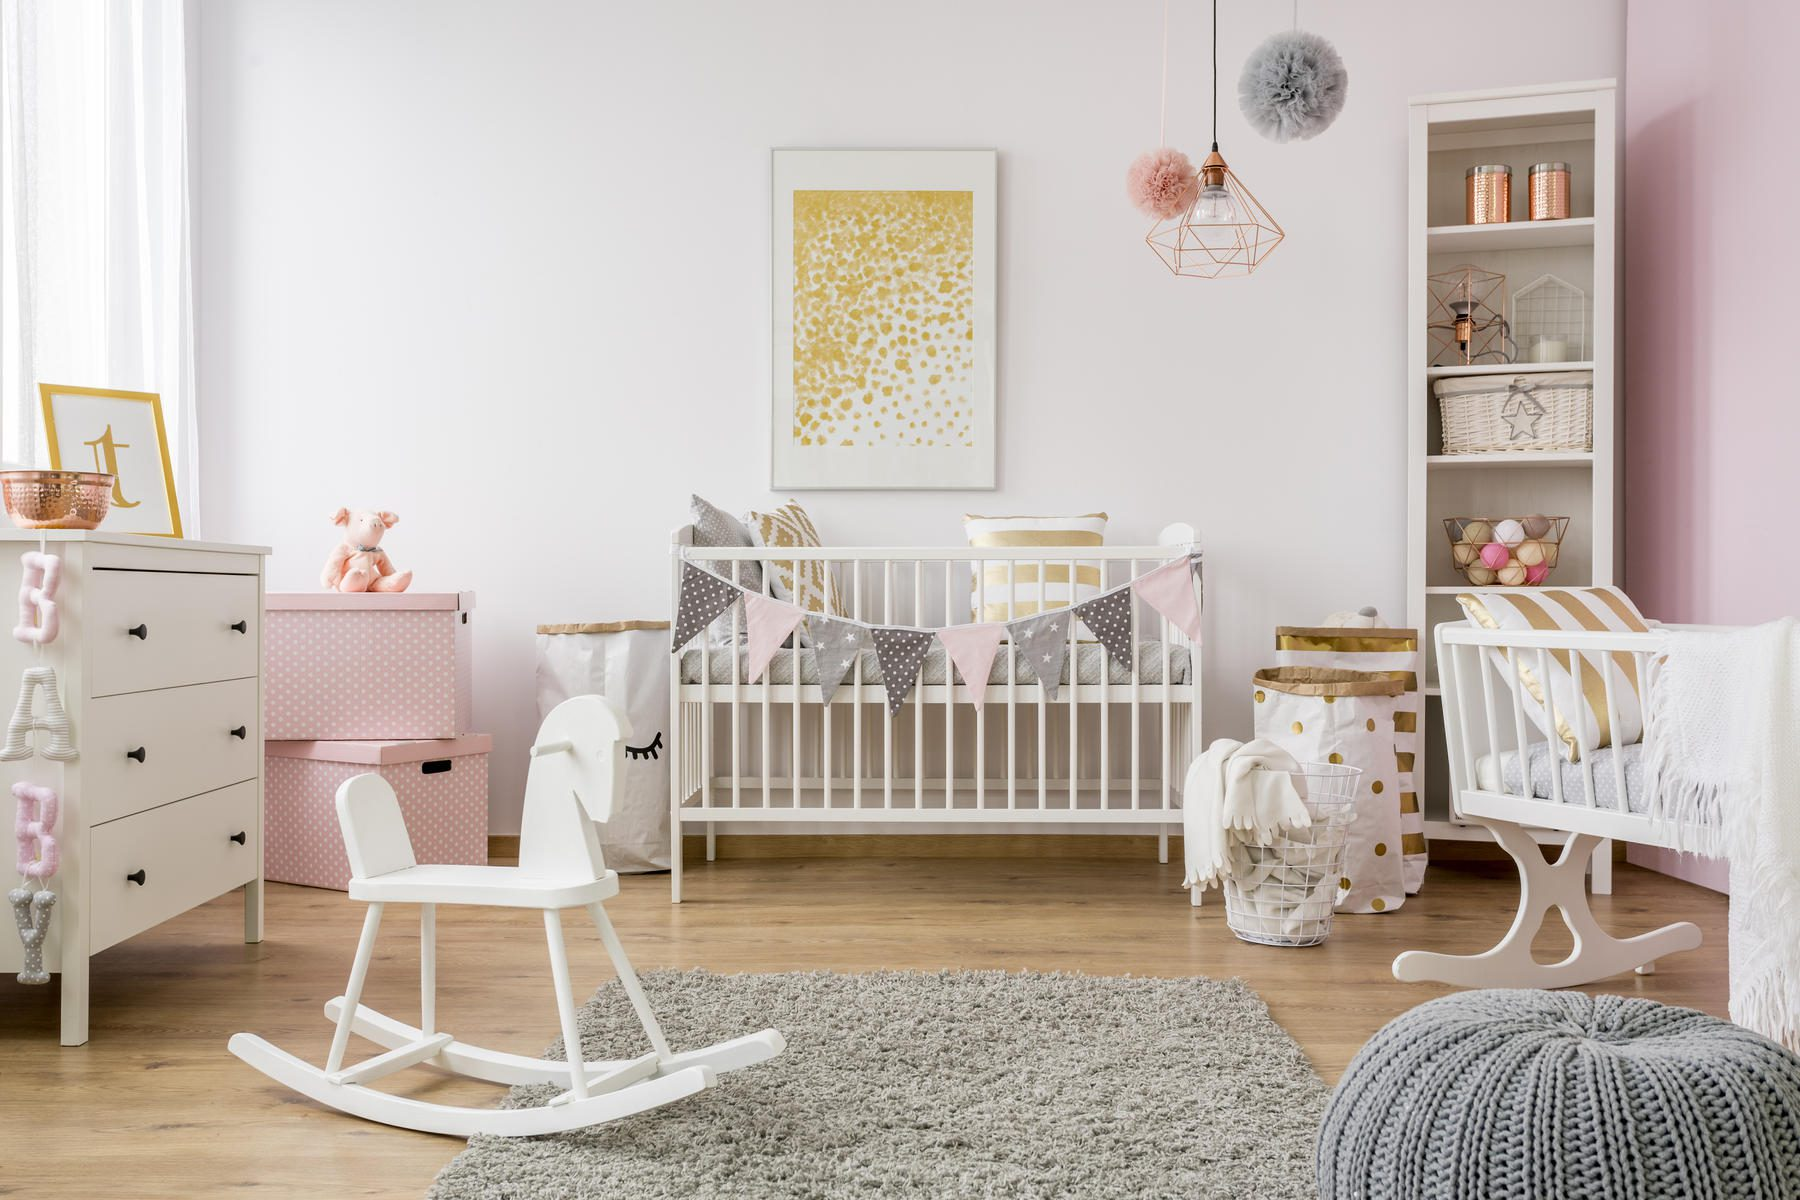 How To Design The Perfect Baby Nursery In 9 Steps